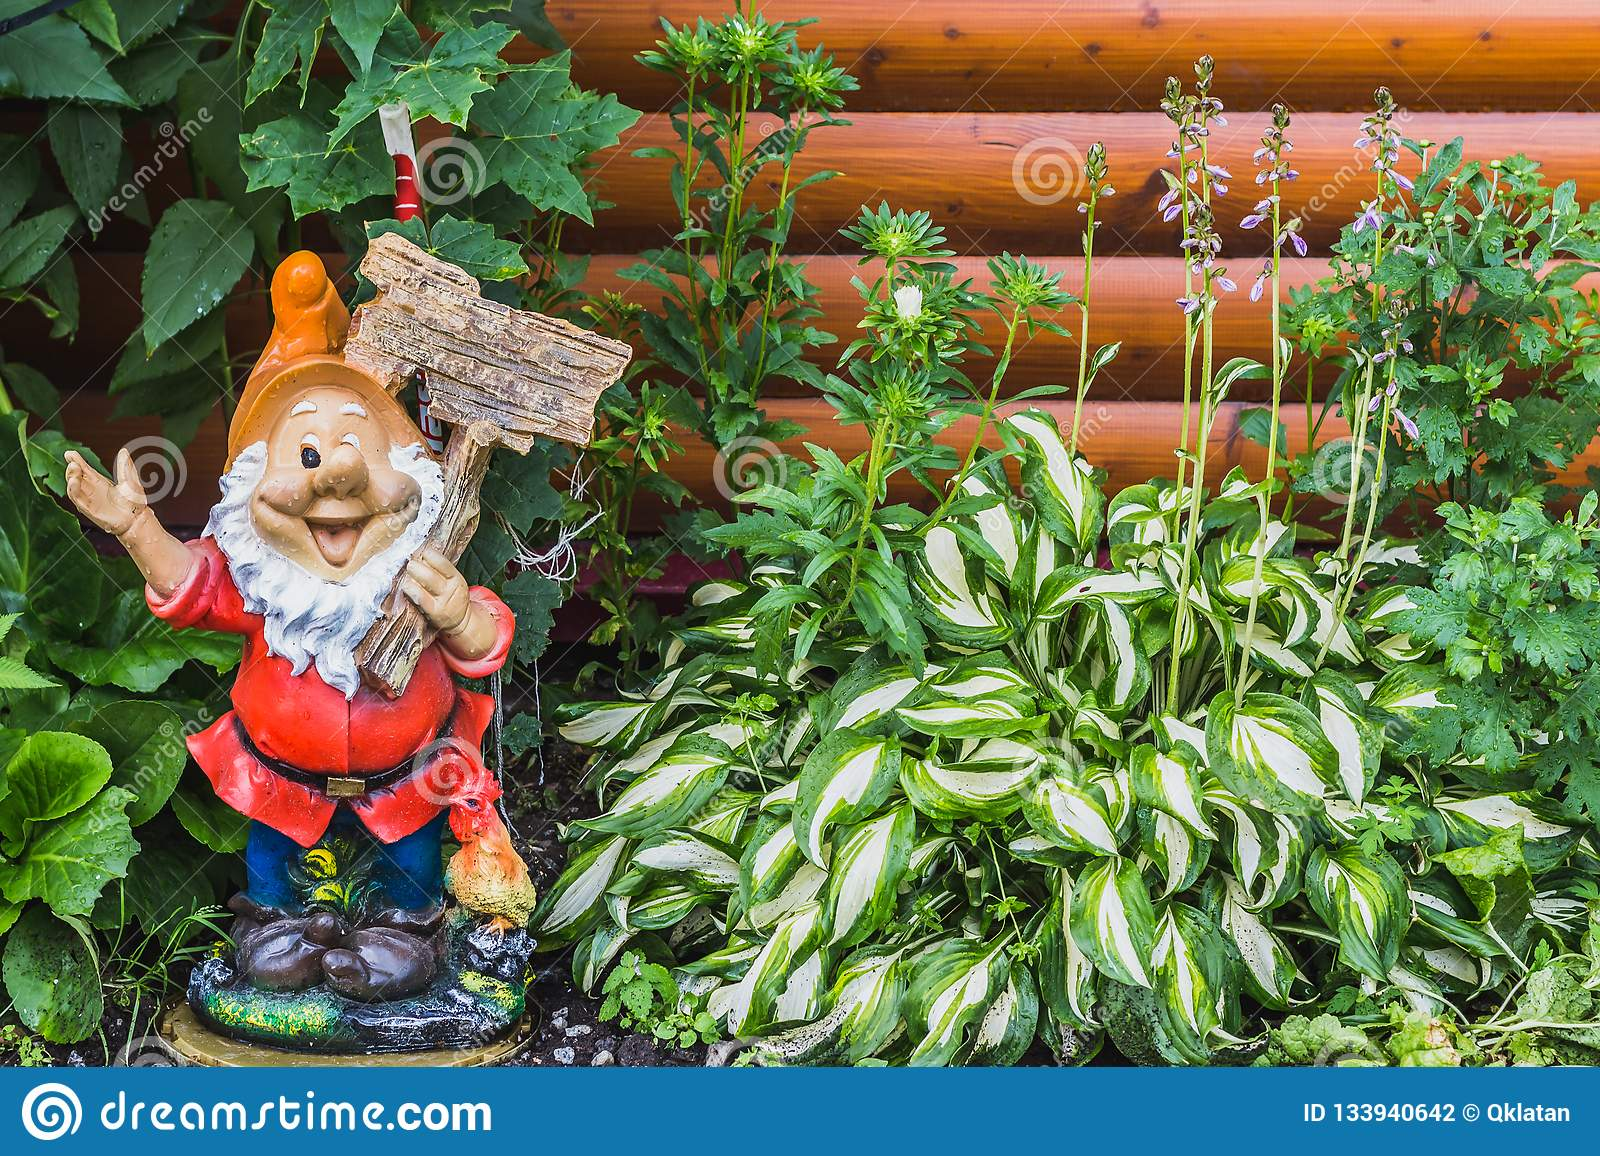 A Beautiful Gnome Garden Figure And Green And White Leaves Of Hosta